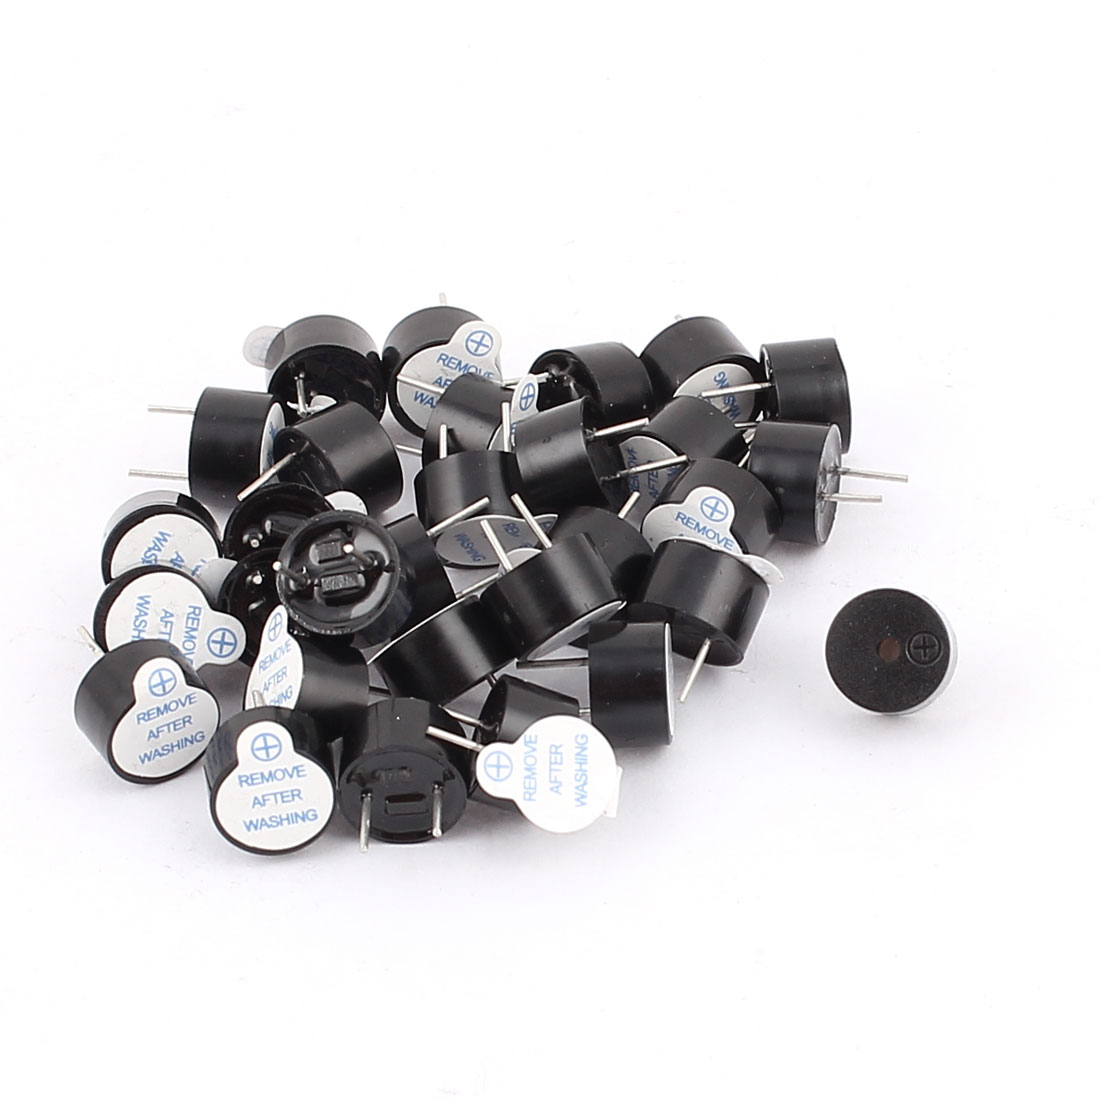 30Pcs Industrial Electronic Electromagnetic Continuous Sound Buzzer 9x5mm